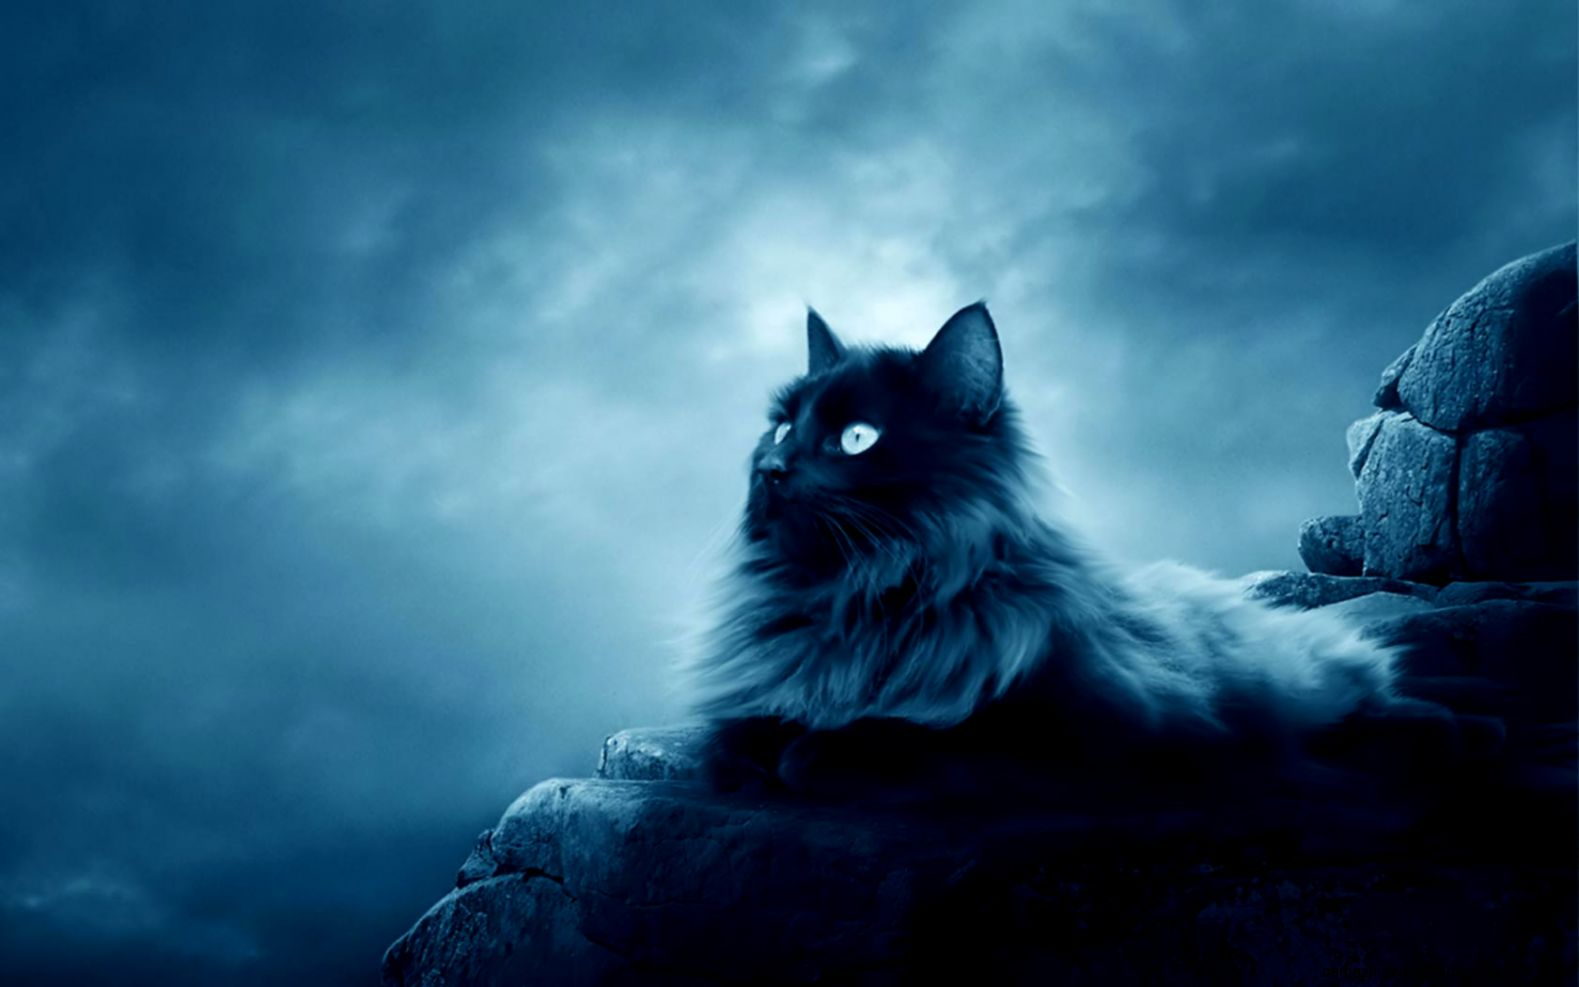 5567 Cat HD Wallpapers  Backgrounds   Wallpaper Abyss